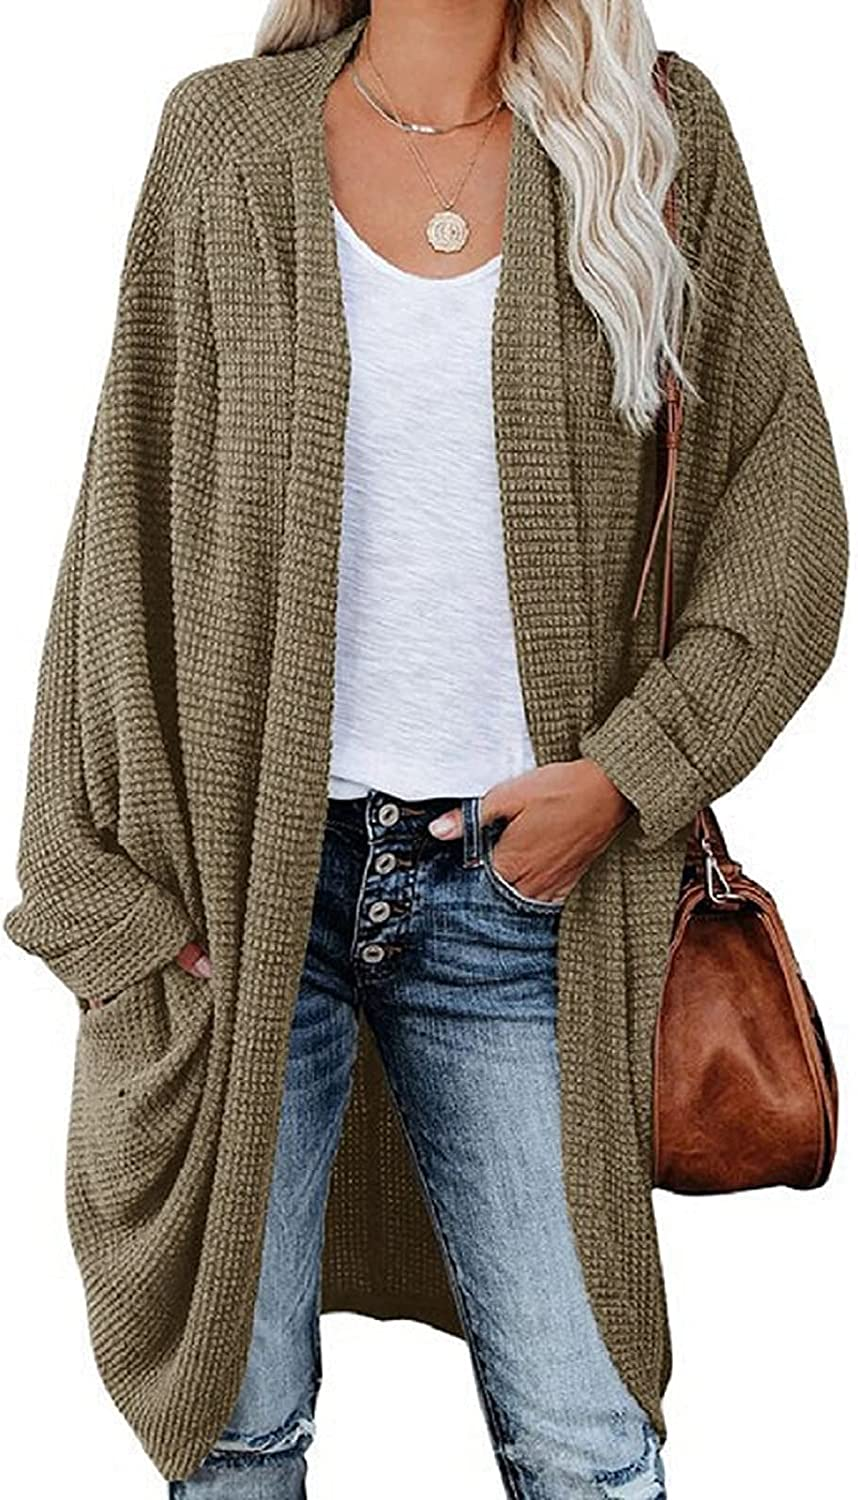 Women 's Lightweight Cardigan Loose Casual Open Front Knit Long Sleeve Shrugs with Pockets